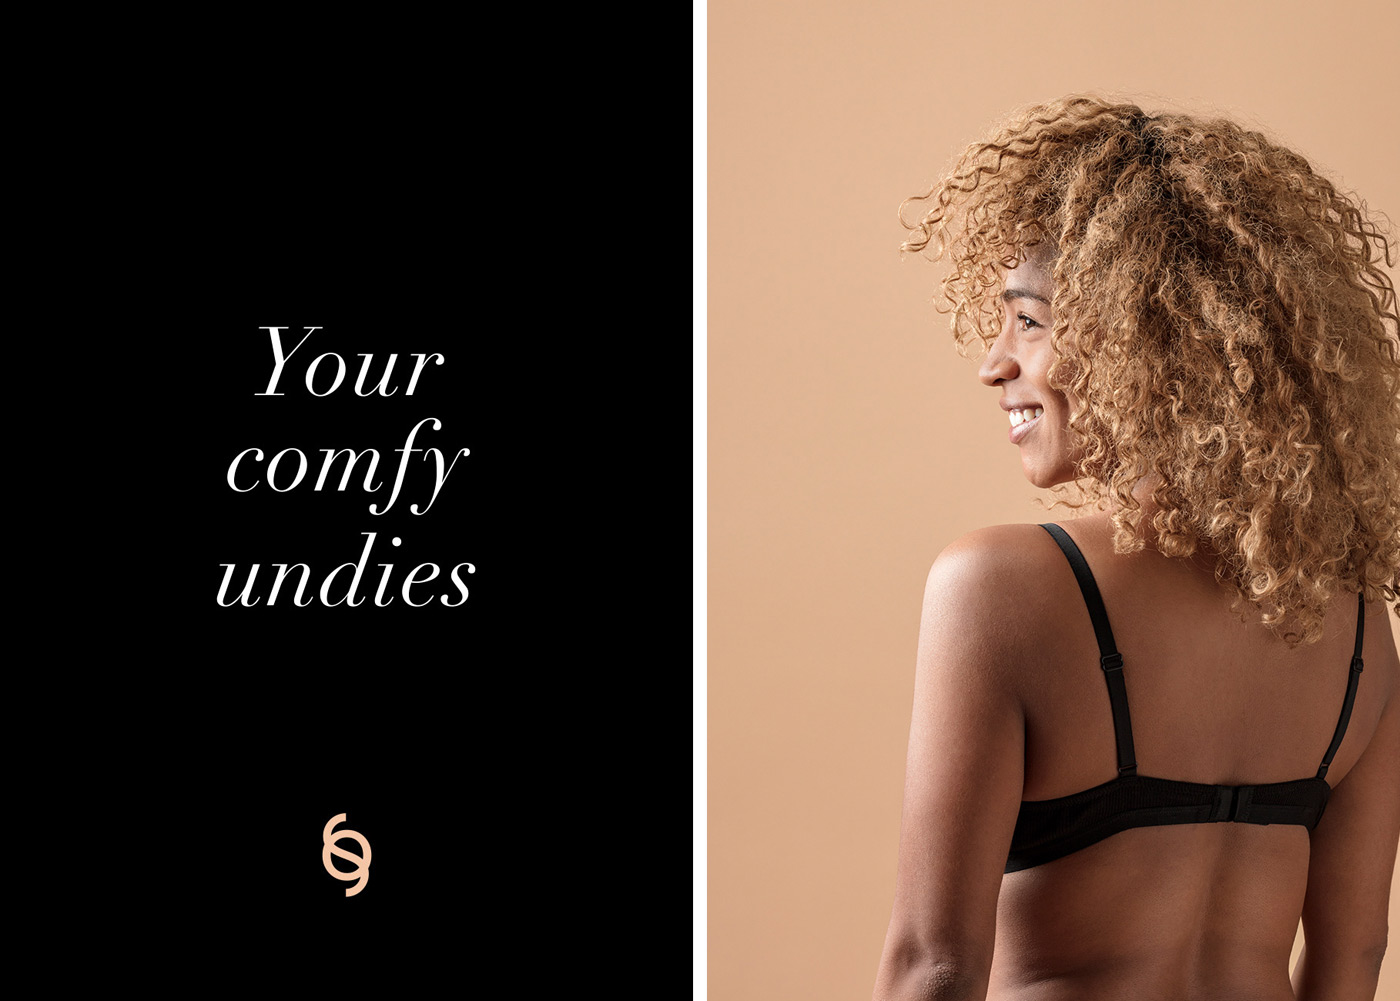 Osiery Underwear: Identity, Packaging, and Web Design by The Branding People